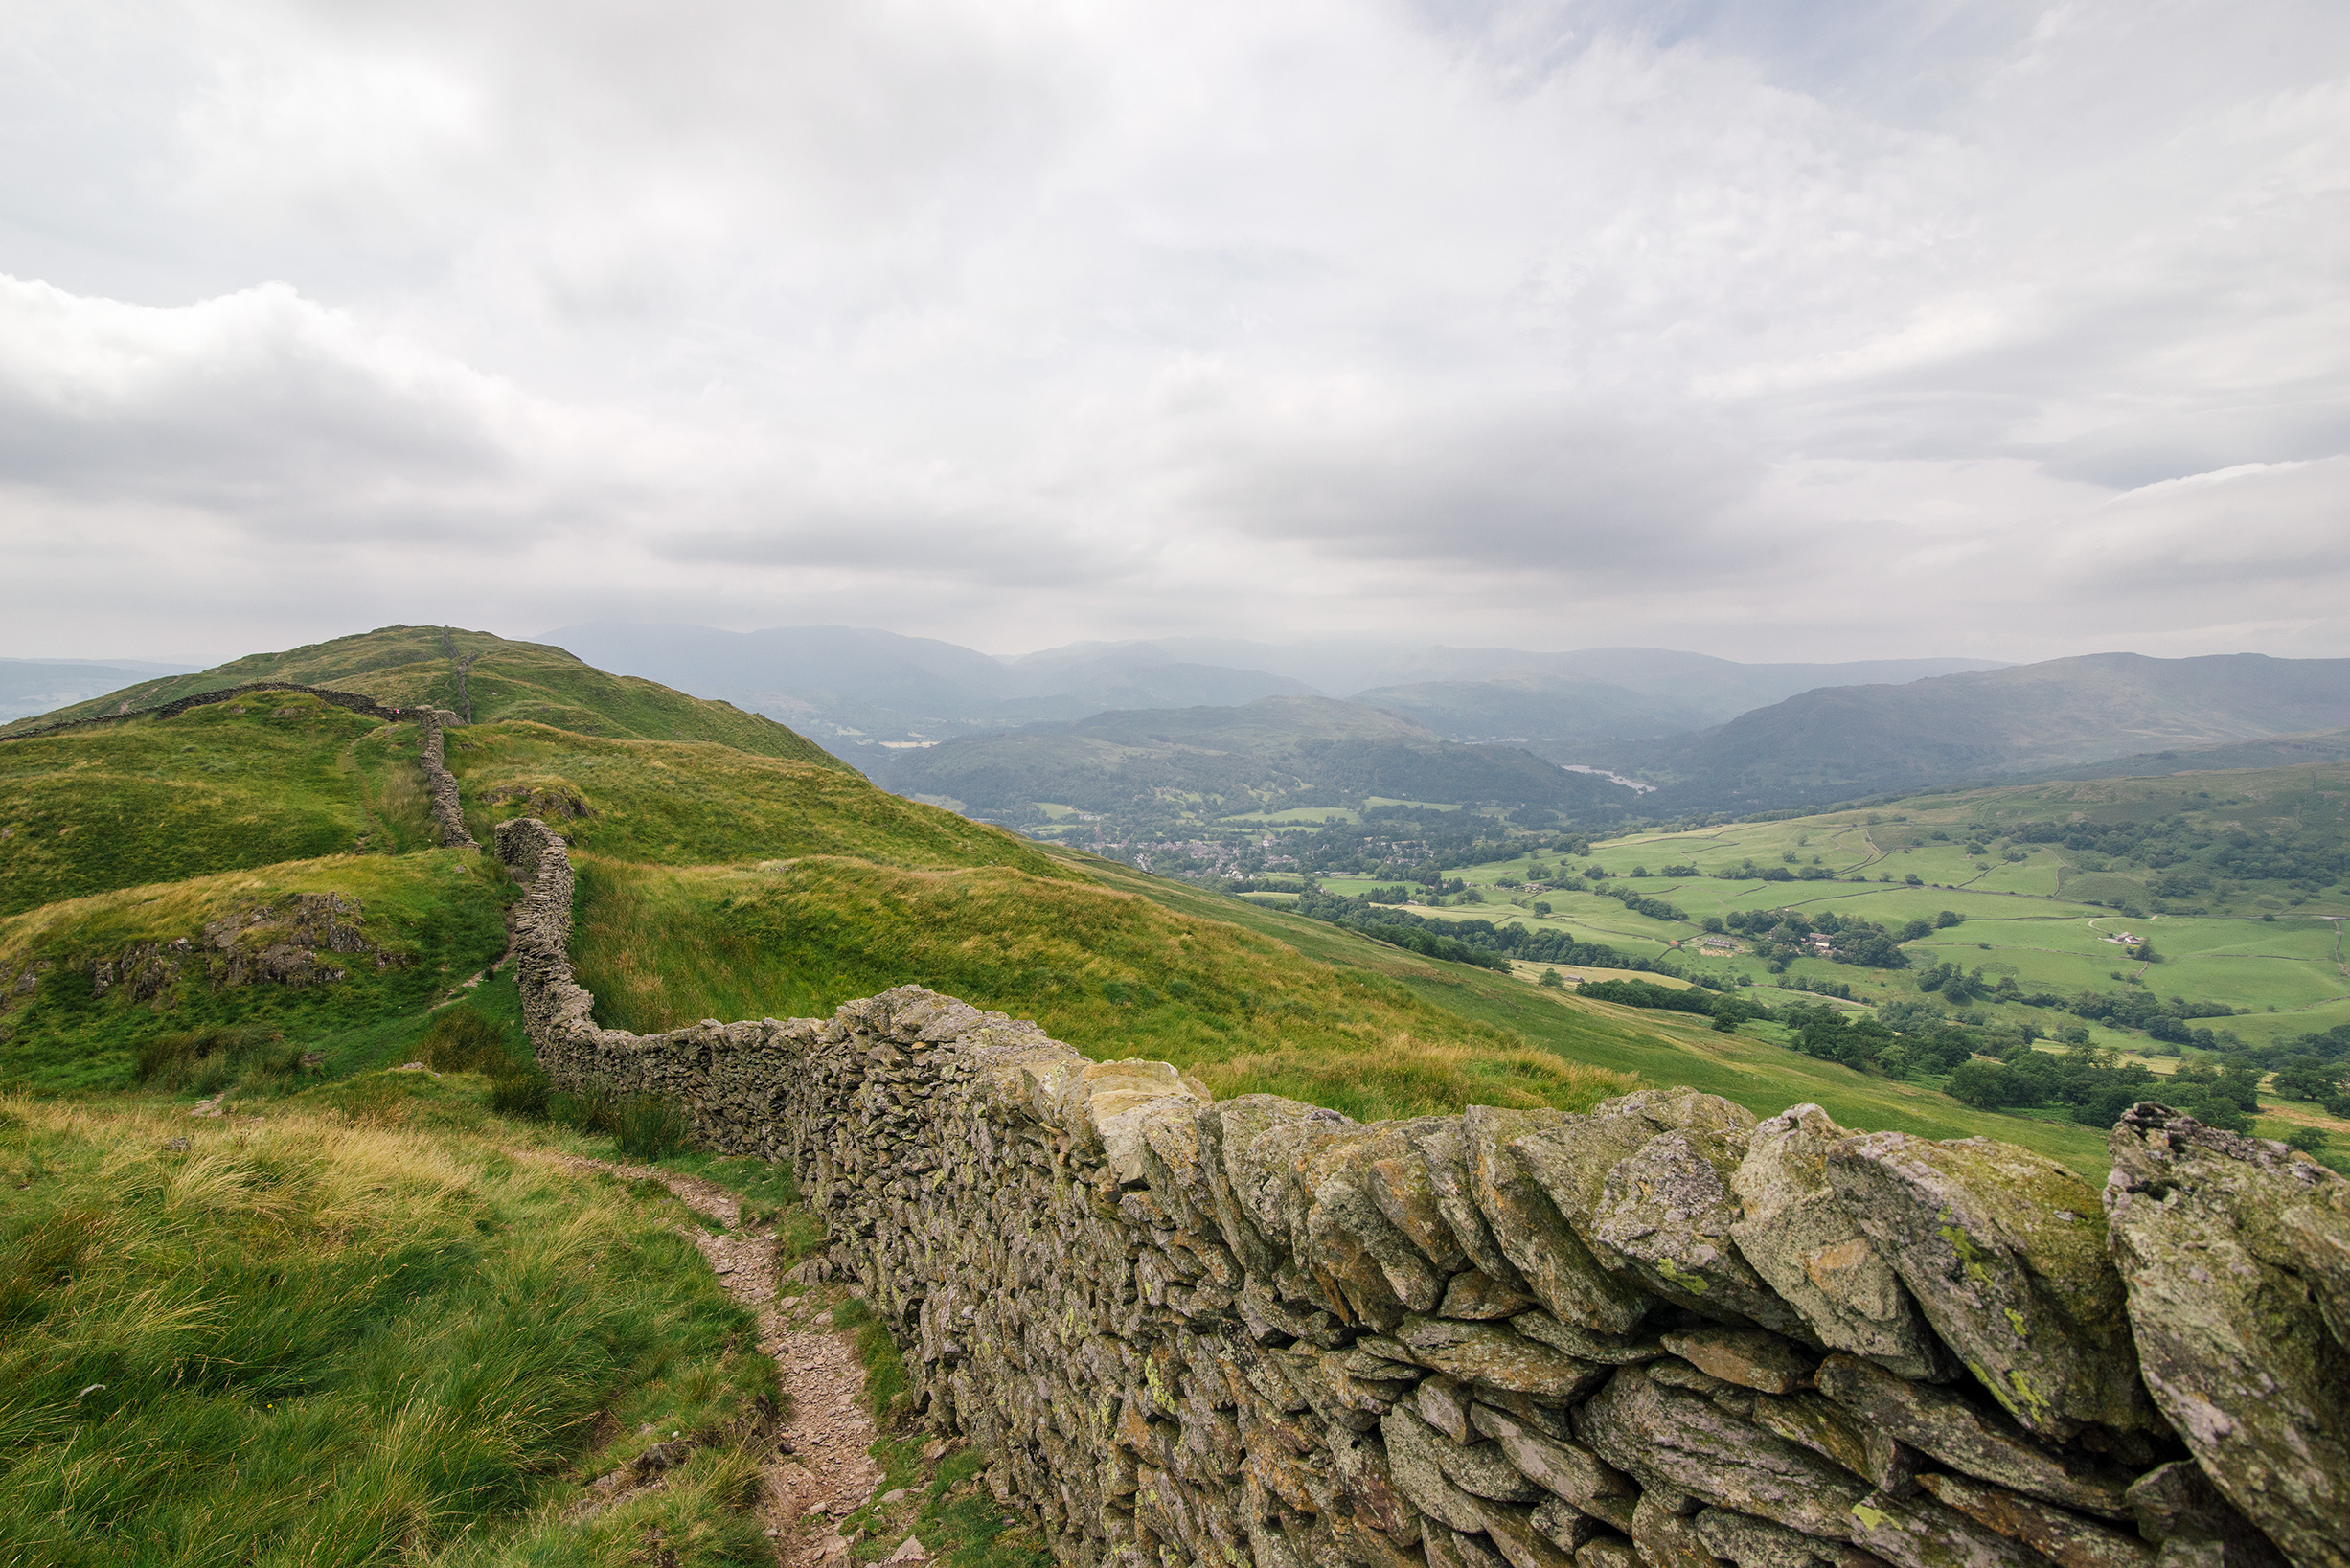 Fellwalking in the Lake District, United Kingdom